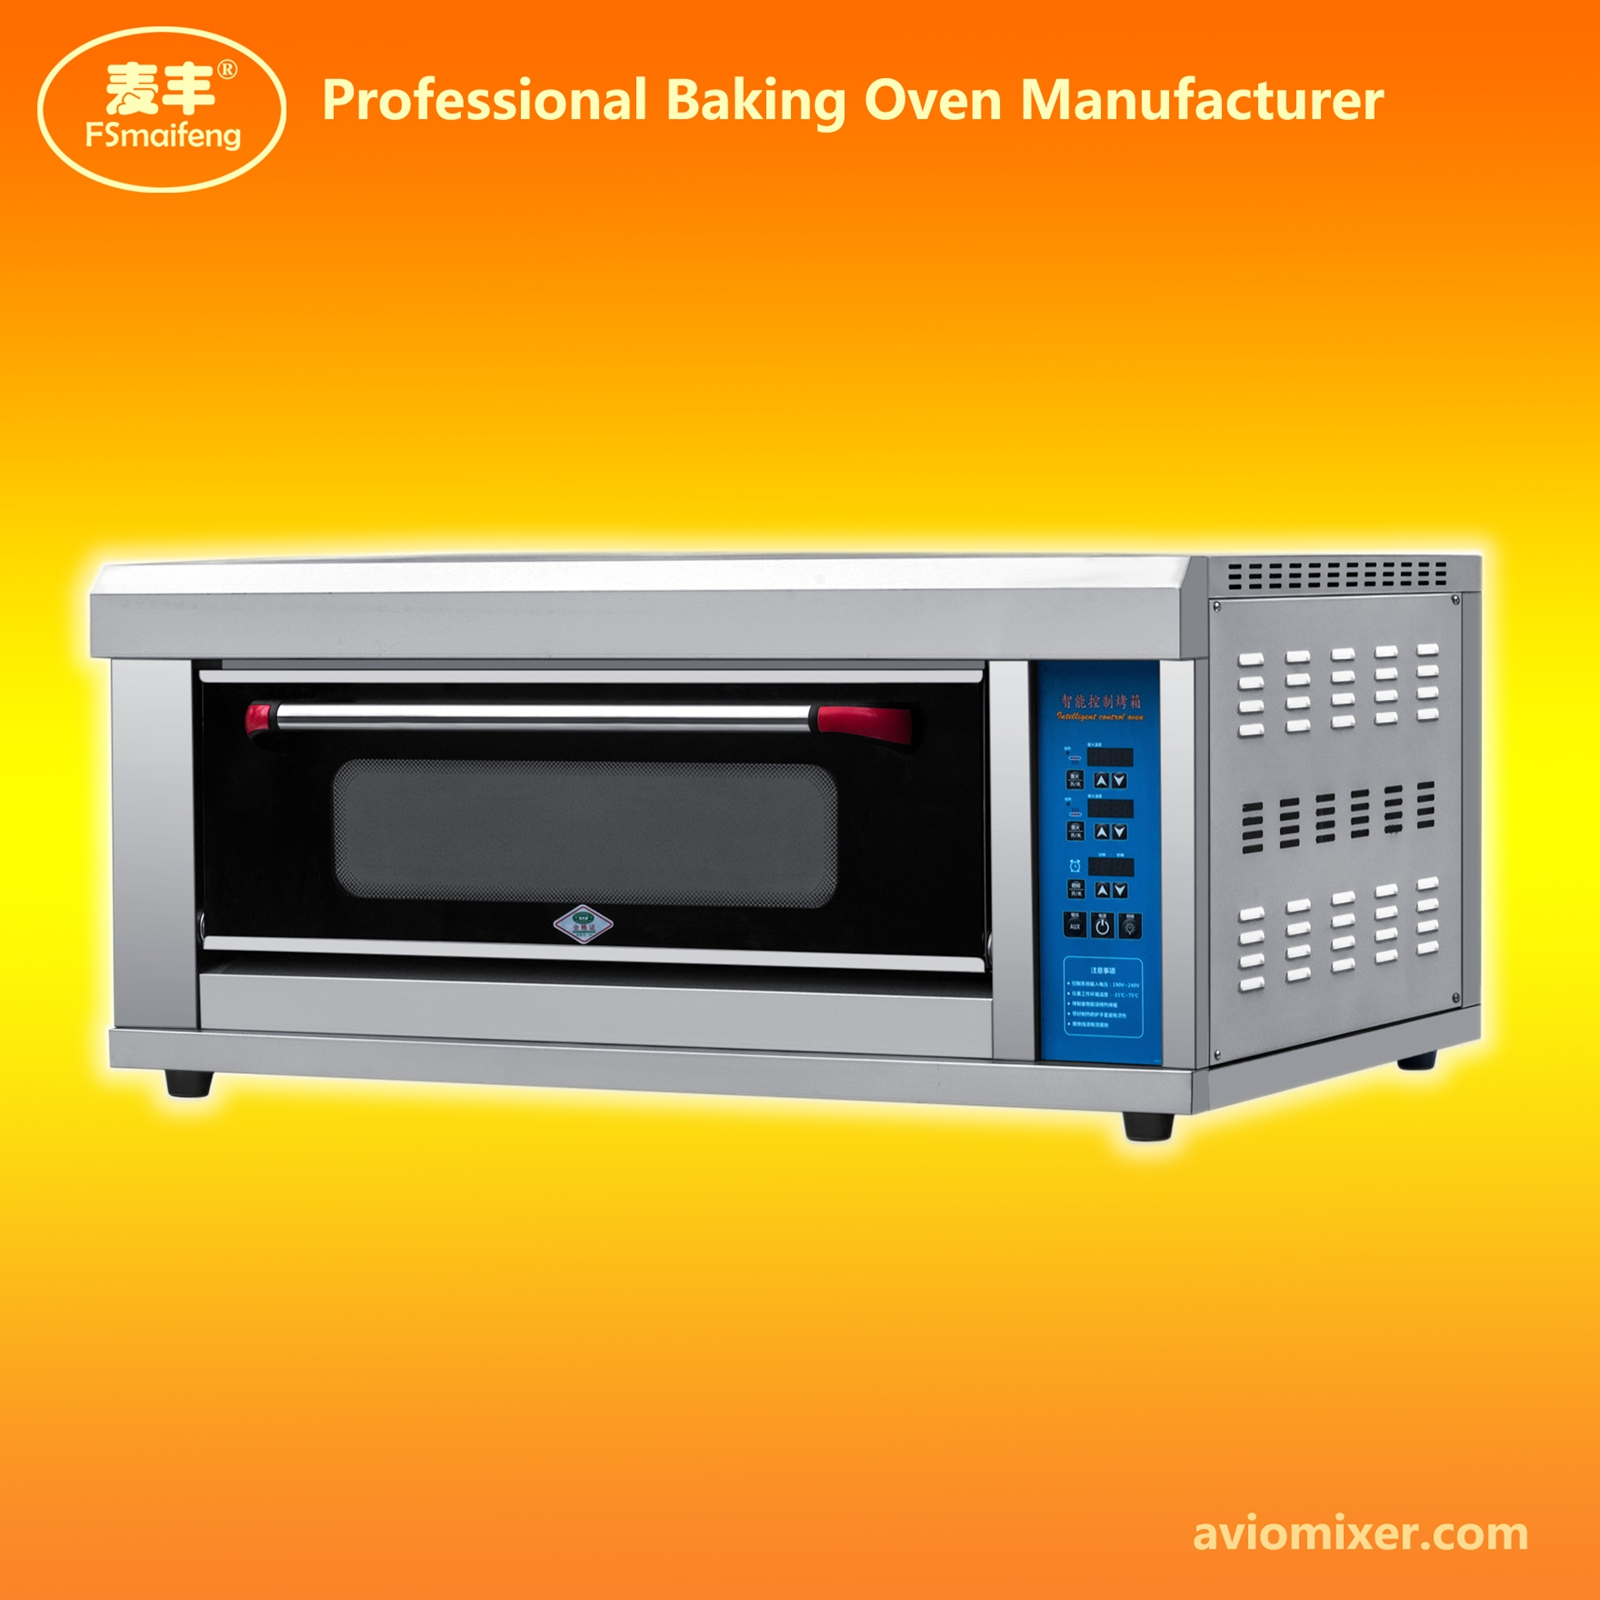 Automatic Touch Control Electric Baking Oven ATSC-20